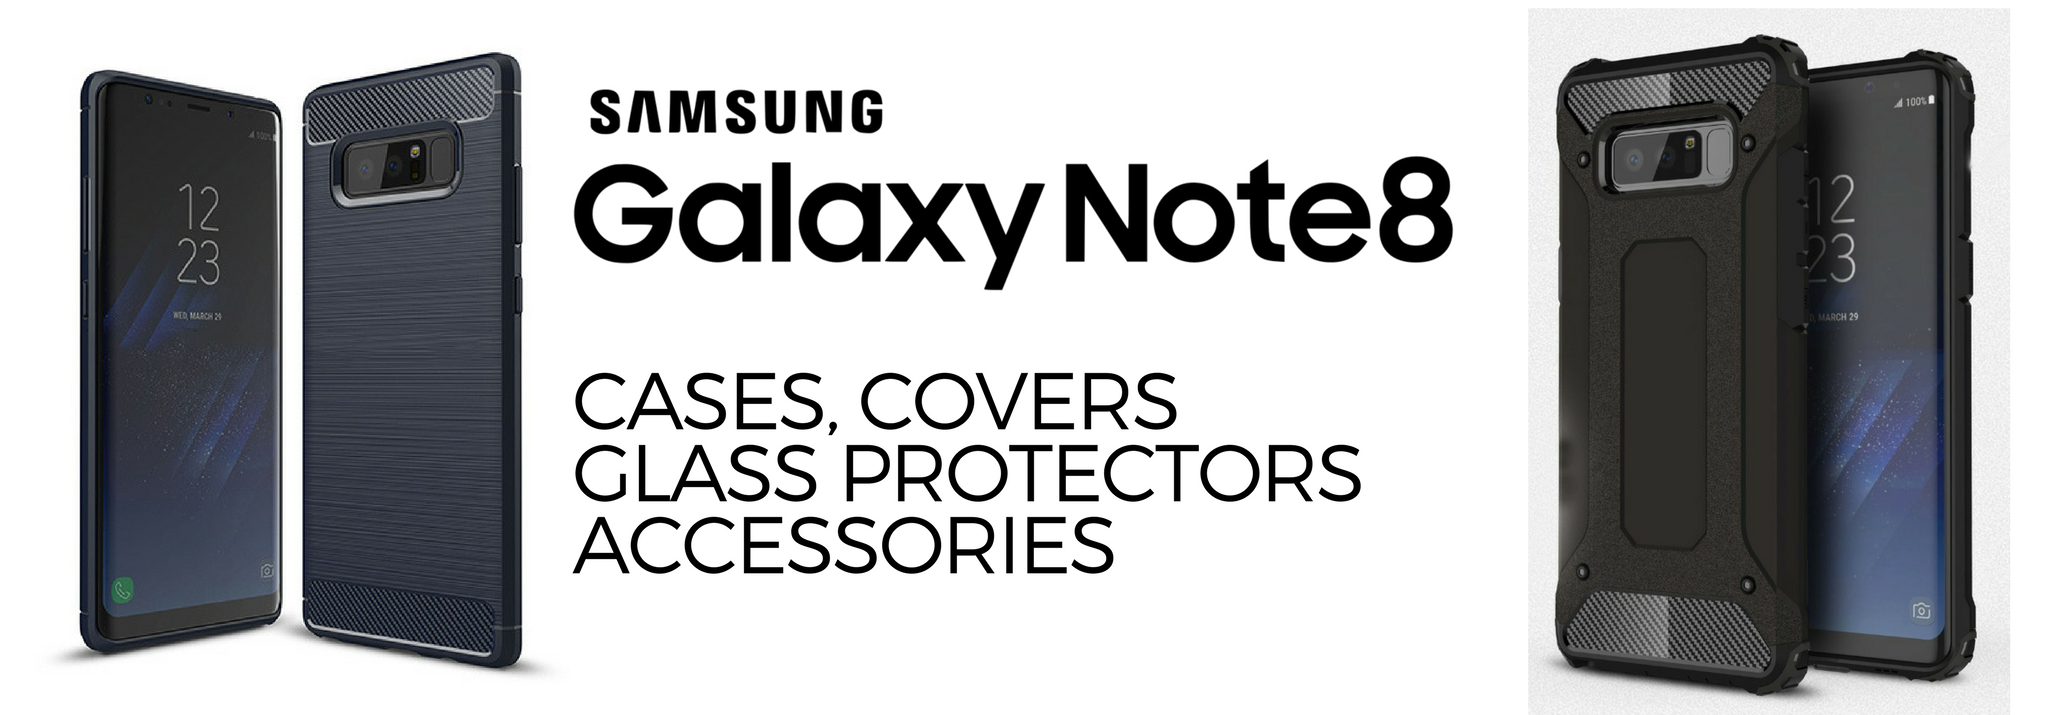 Samsung Galaxy Note 8 Covers Glass Accessories Buy in Pakistan